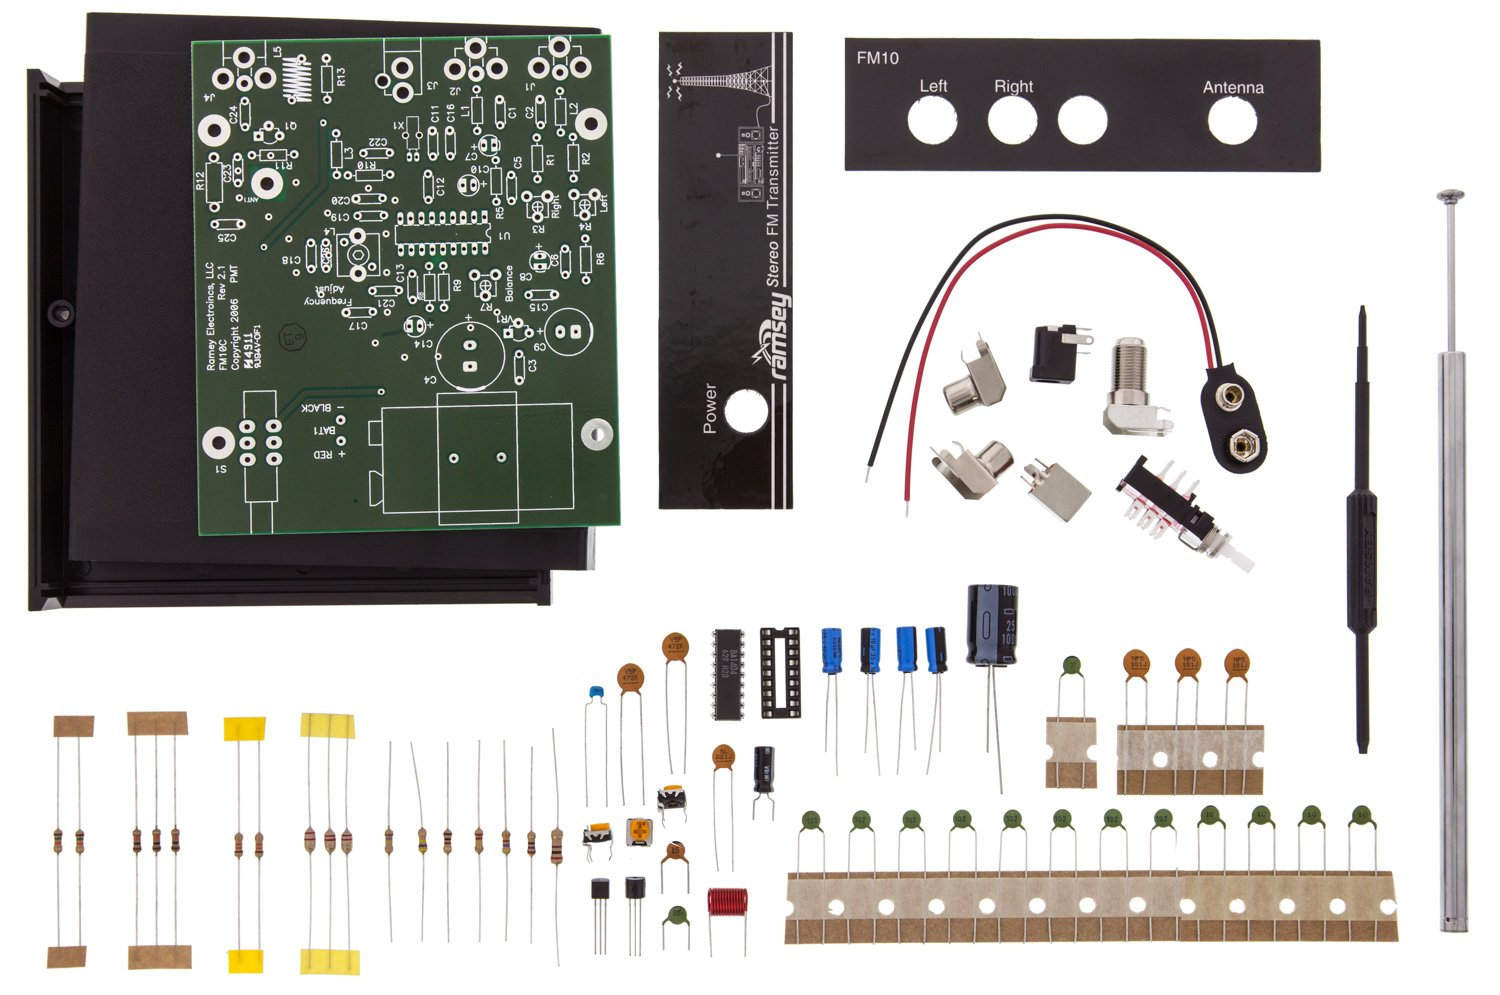 Ramsey Fm10c Fm Stereo Transmitter Kit Soldering Asse Audio Circuit Diagram Mbly Required Mp3 Players Accessories